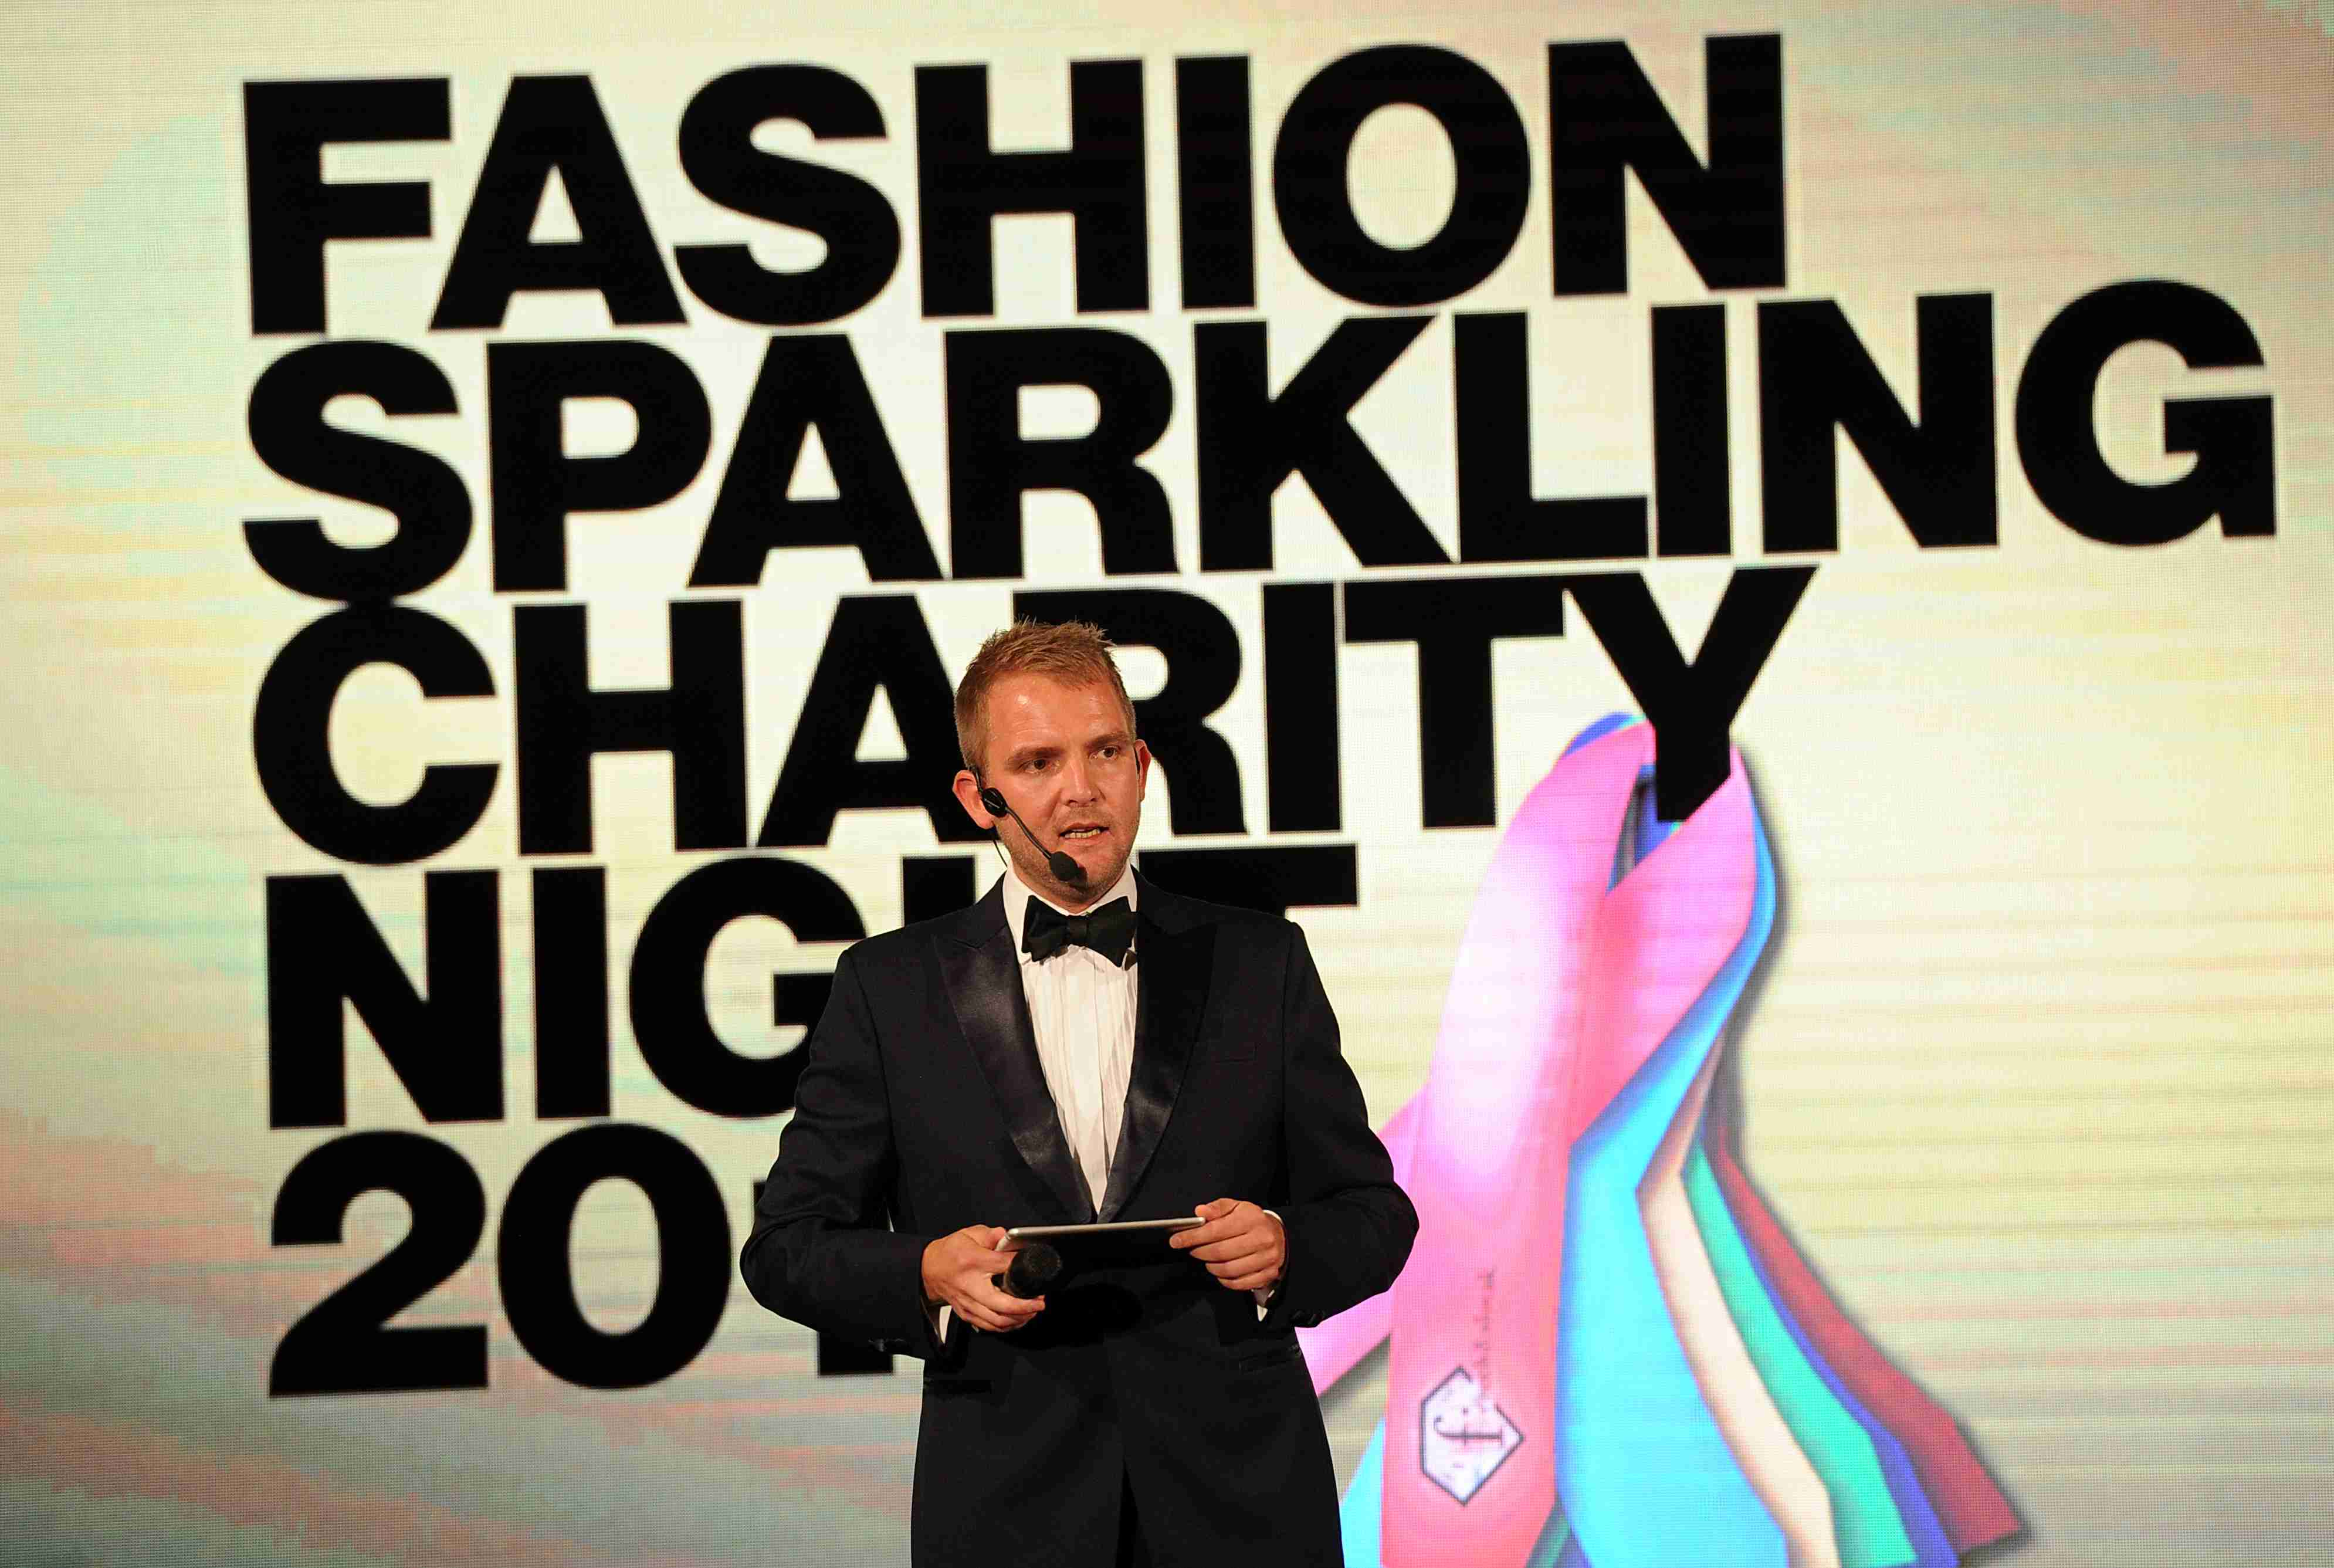 FASHION SPARKLING CHARITY NIGHT 2017